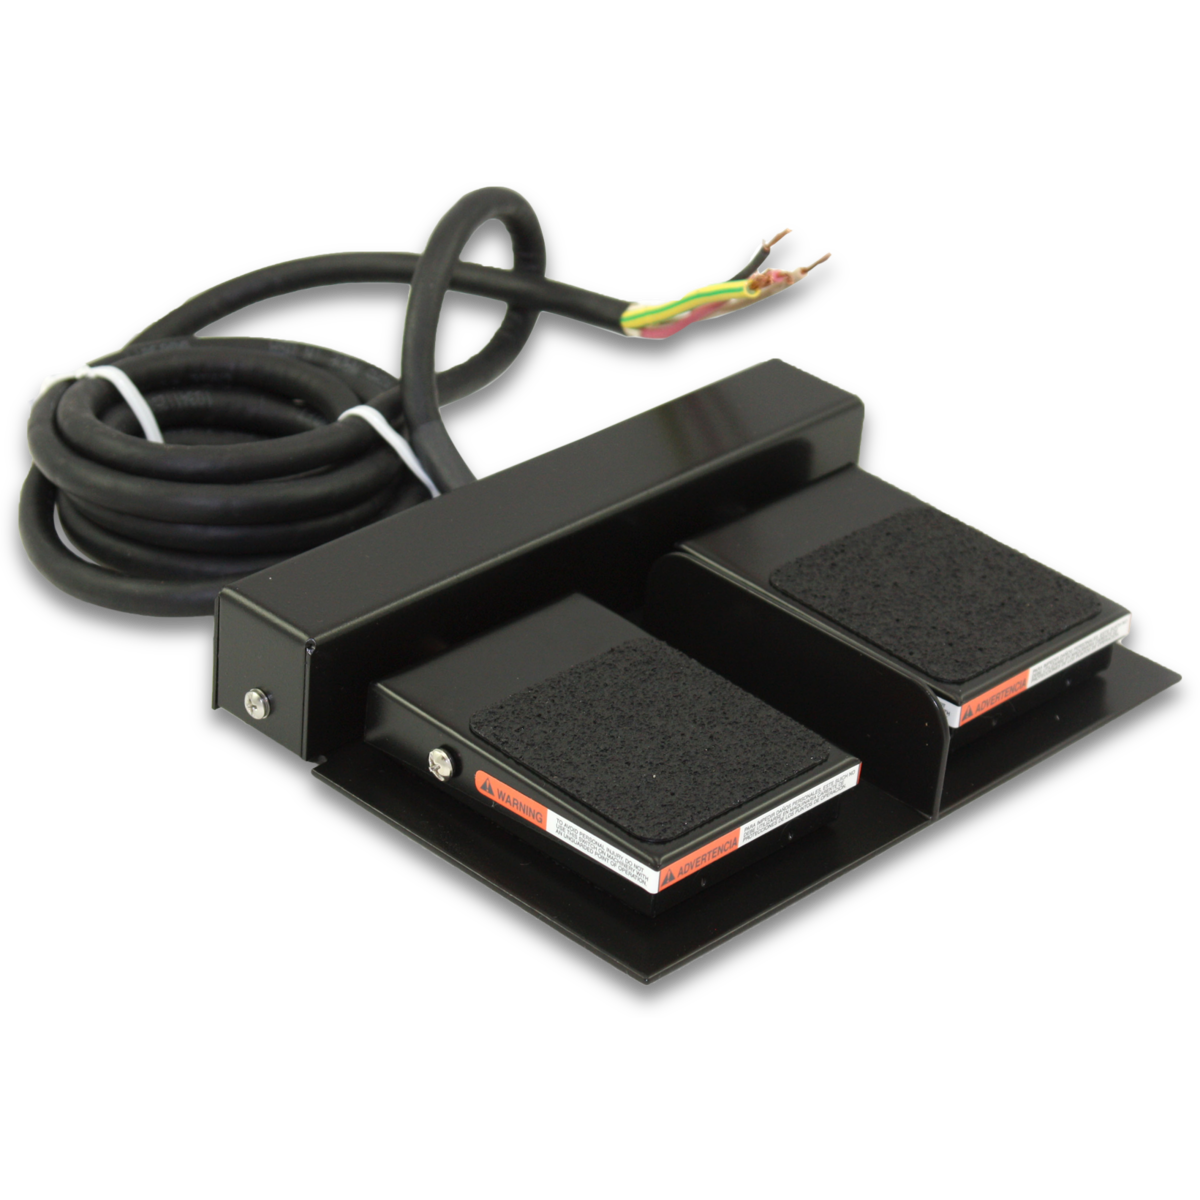 Linemaster T-91-SC3A Treadlite II Foot Switch Single Pedal SPDT 8 Electrical